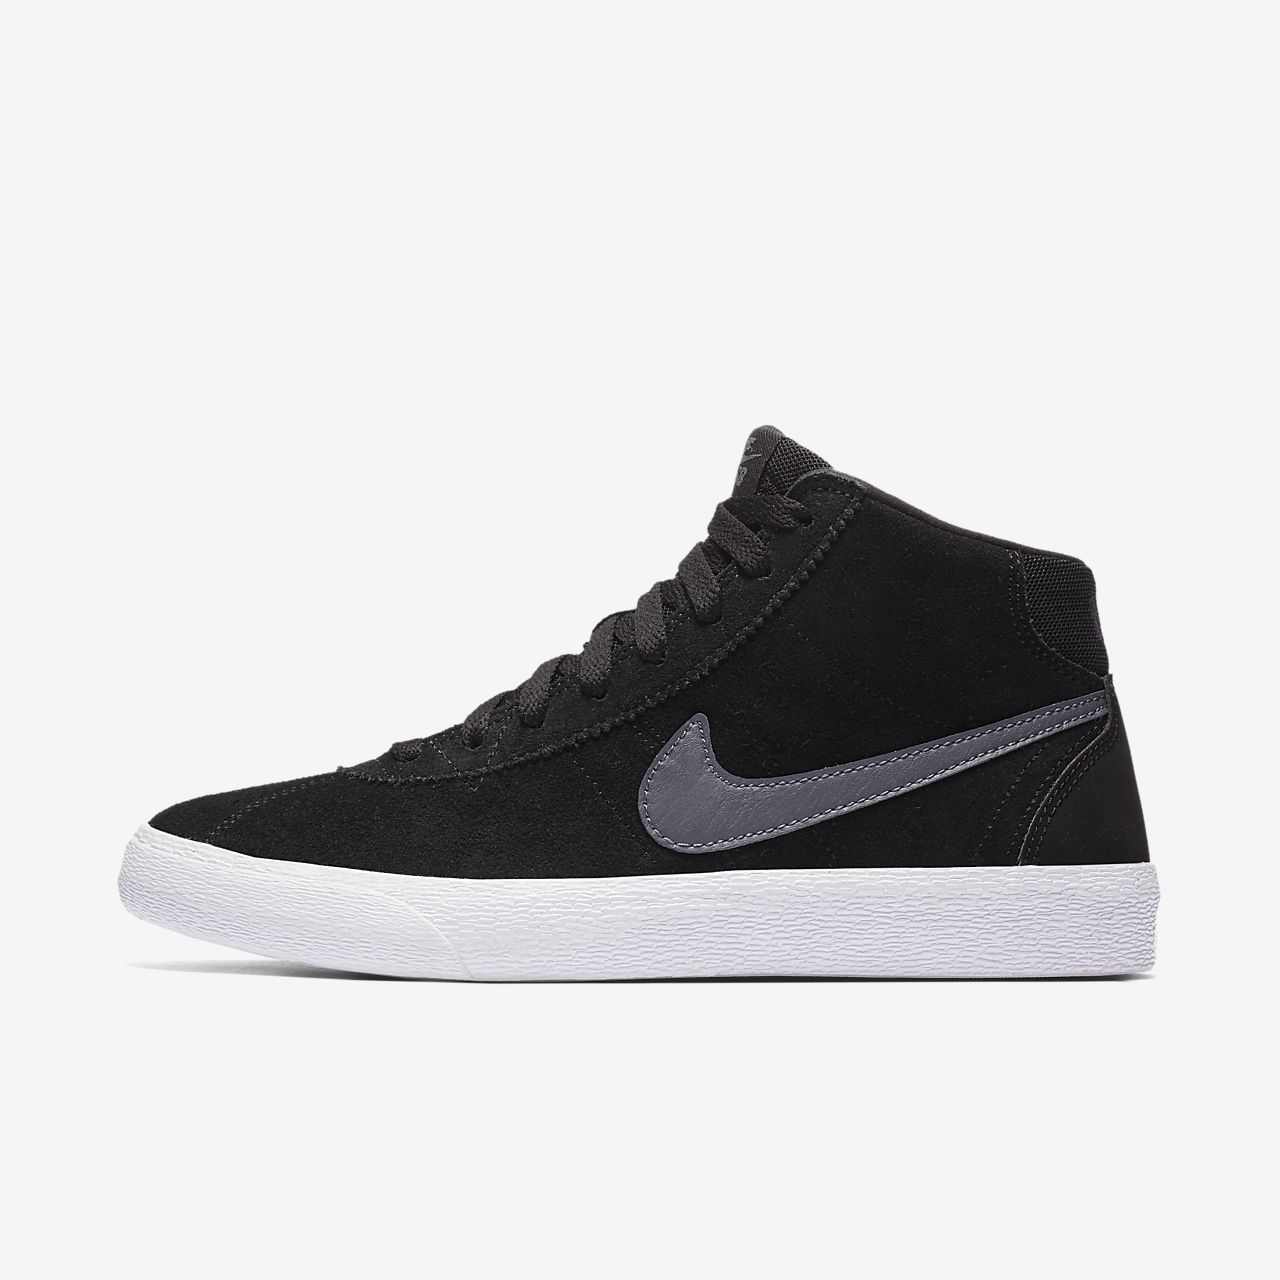 nike skate shoes ... nike sb bruin high womenu0027s skateboarding shoe AIVIWTO